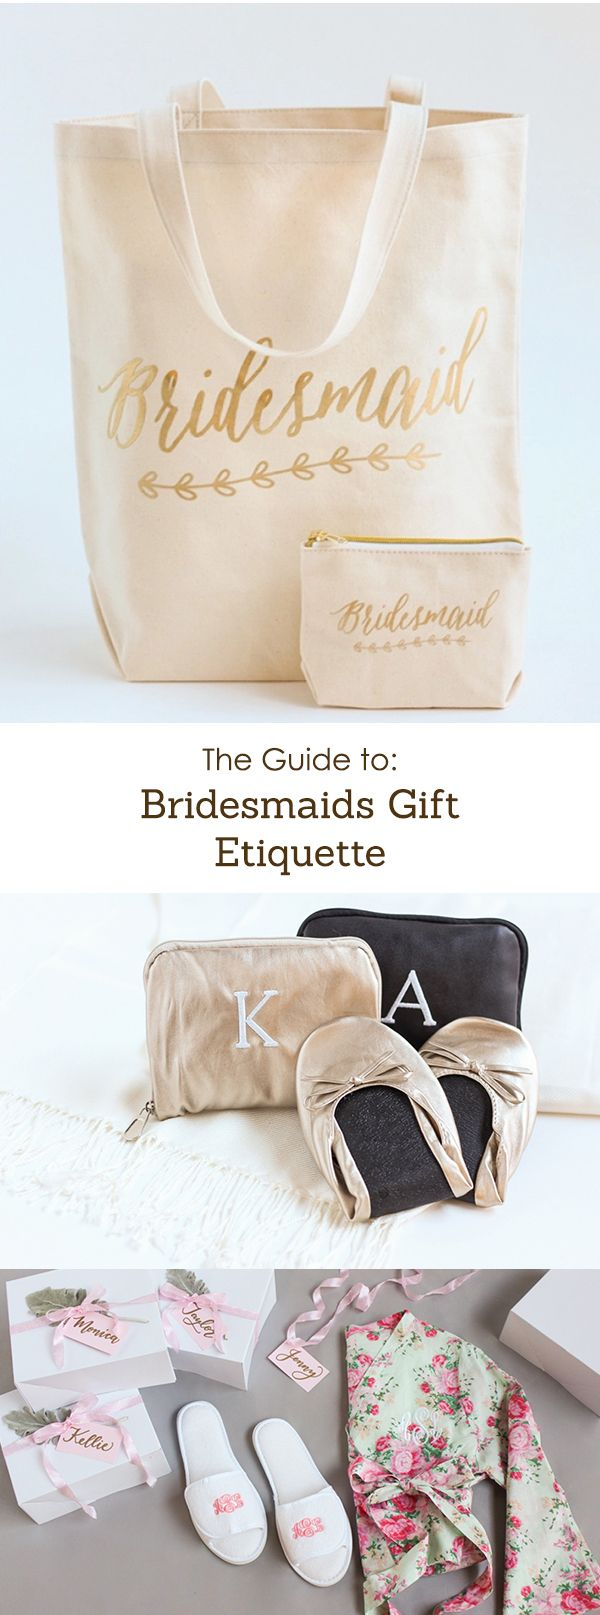 The guide to finding, purchasing, wrapping, and giving a bridesmaid gift she will love.